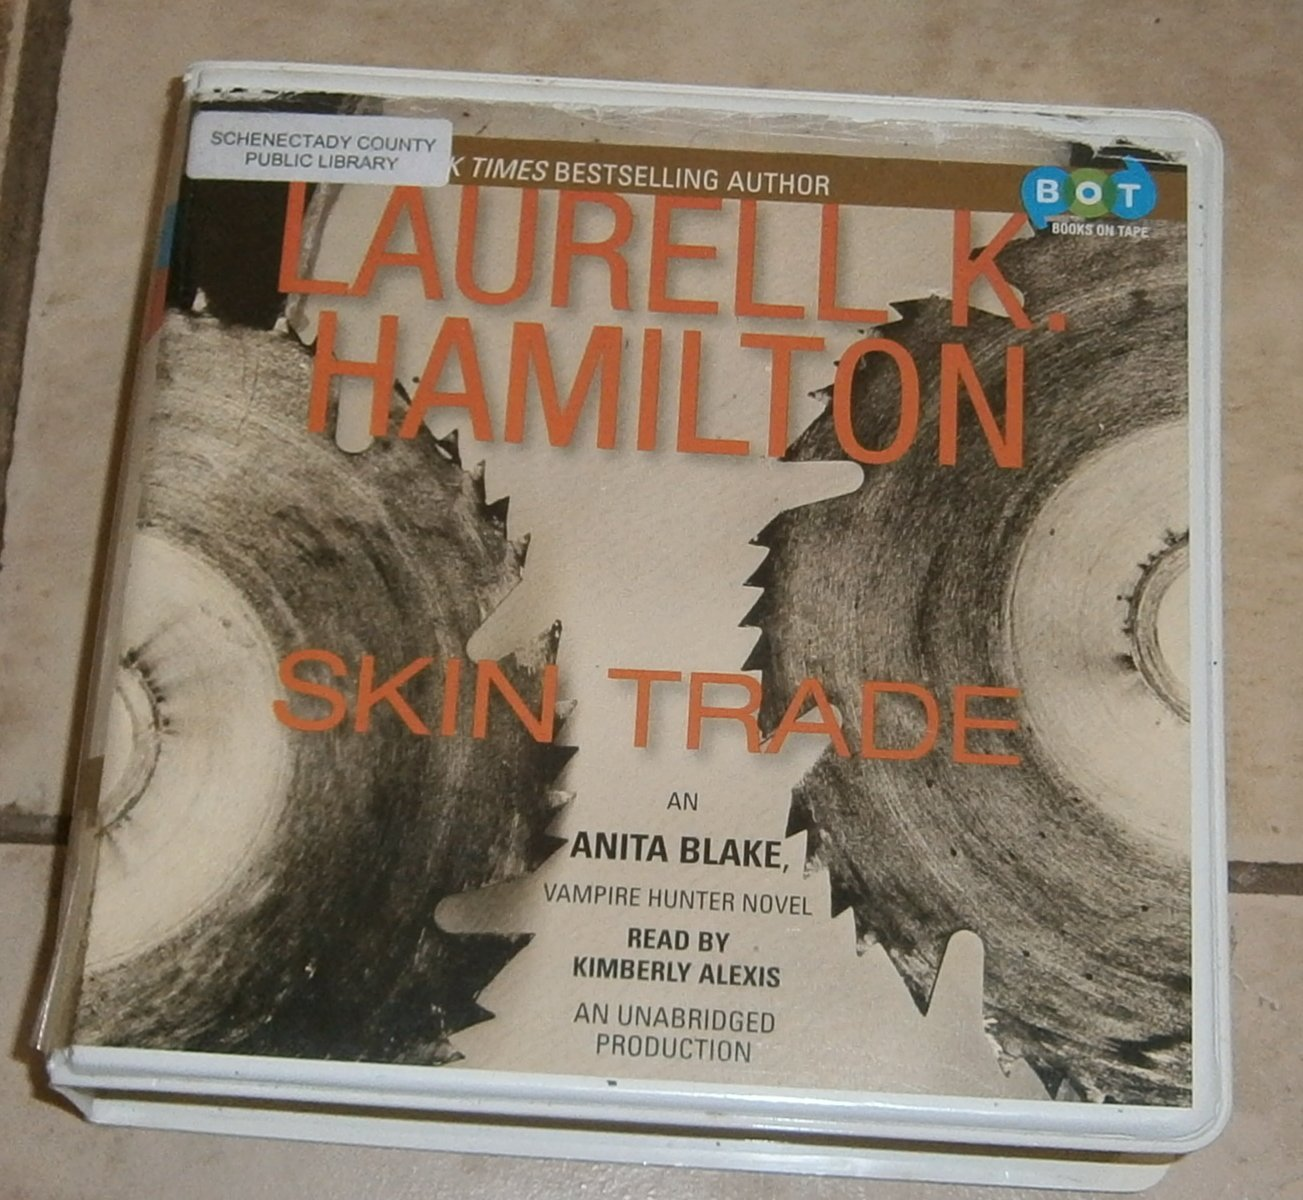 Skin Trade audio book cds Laurell K. Hamilton